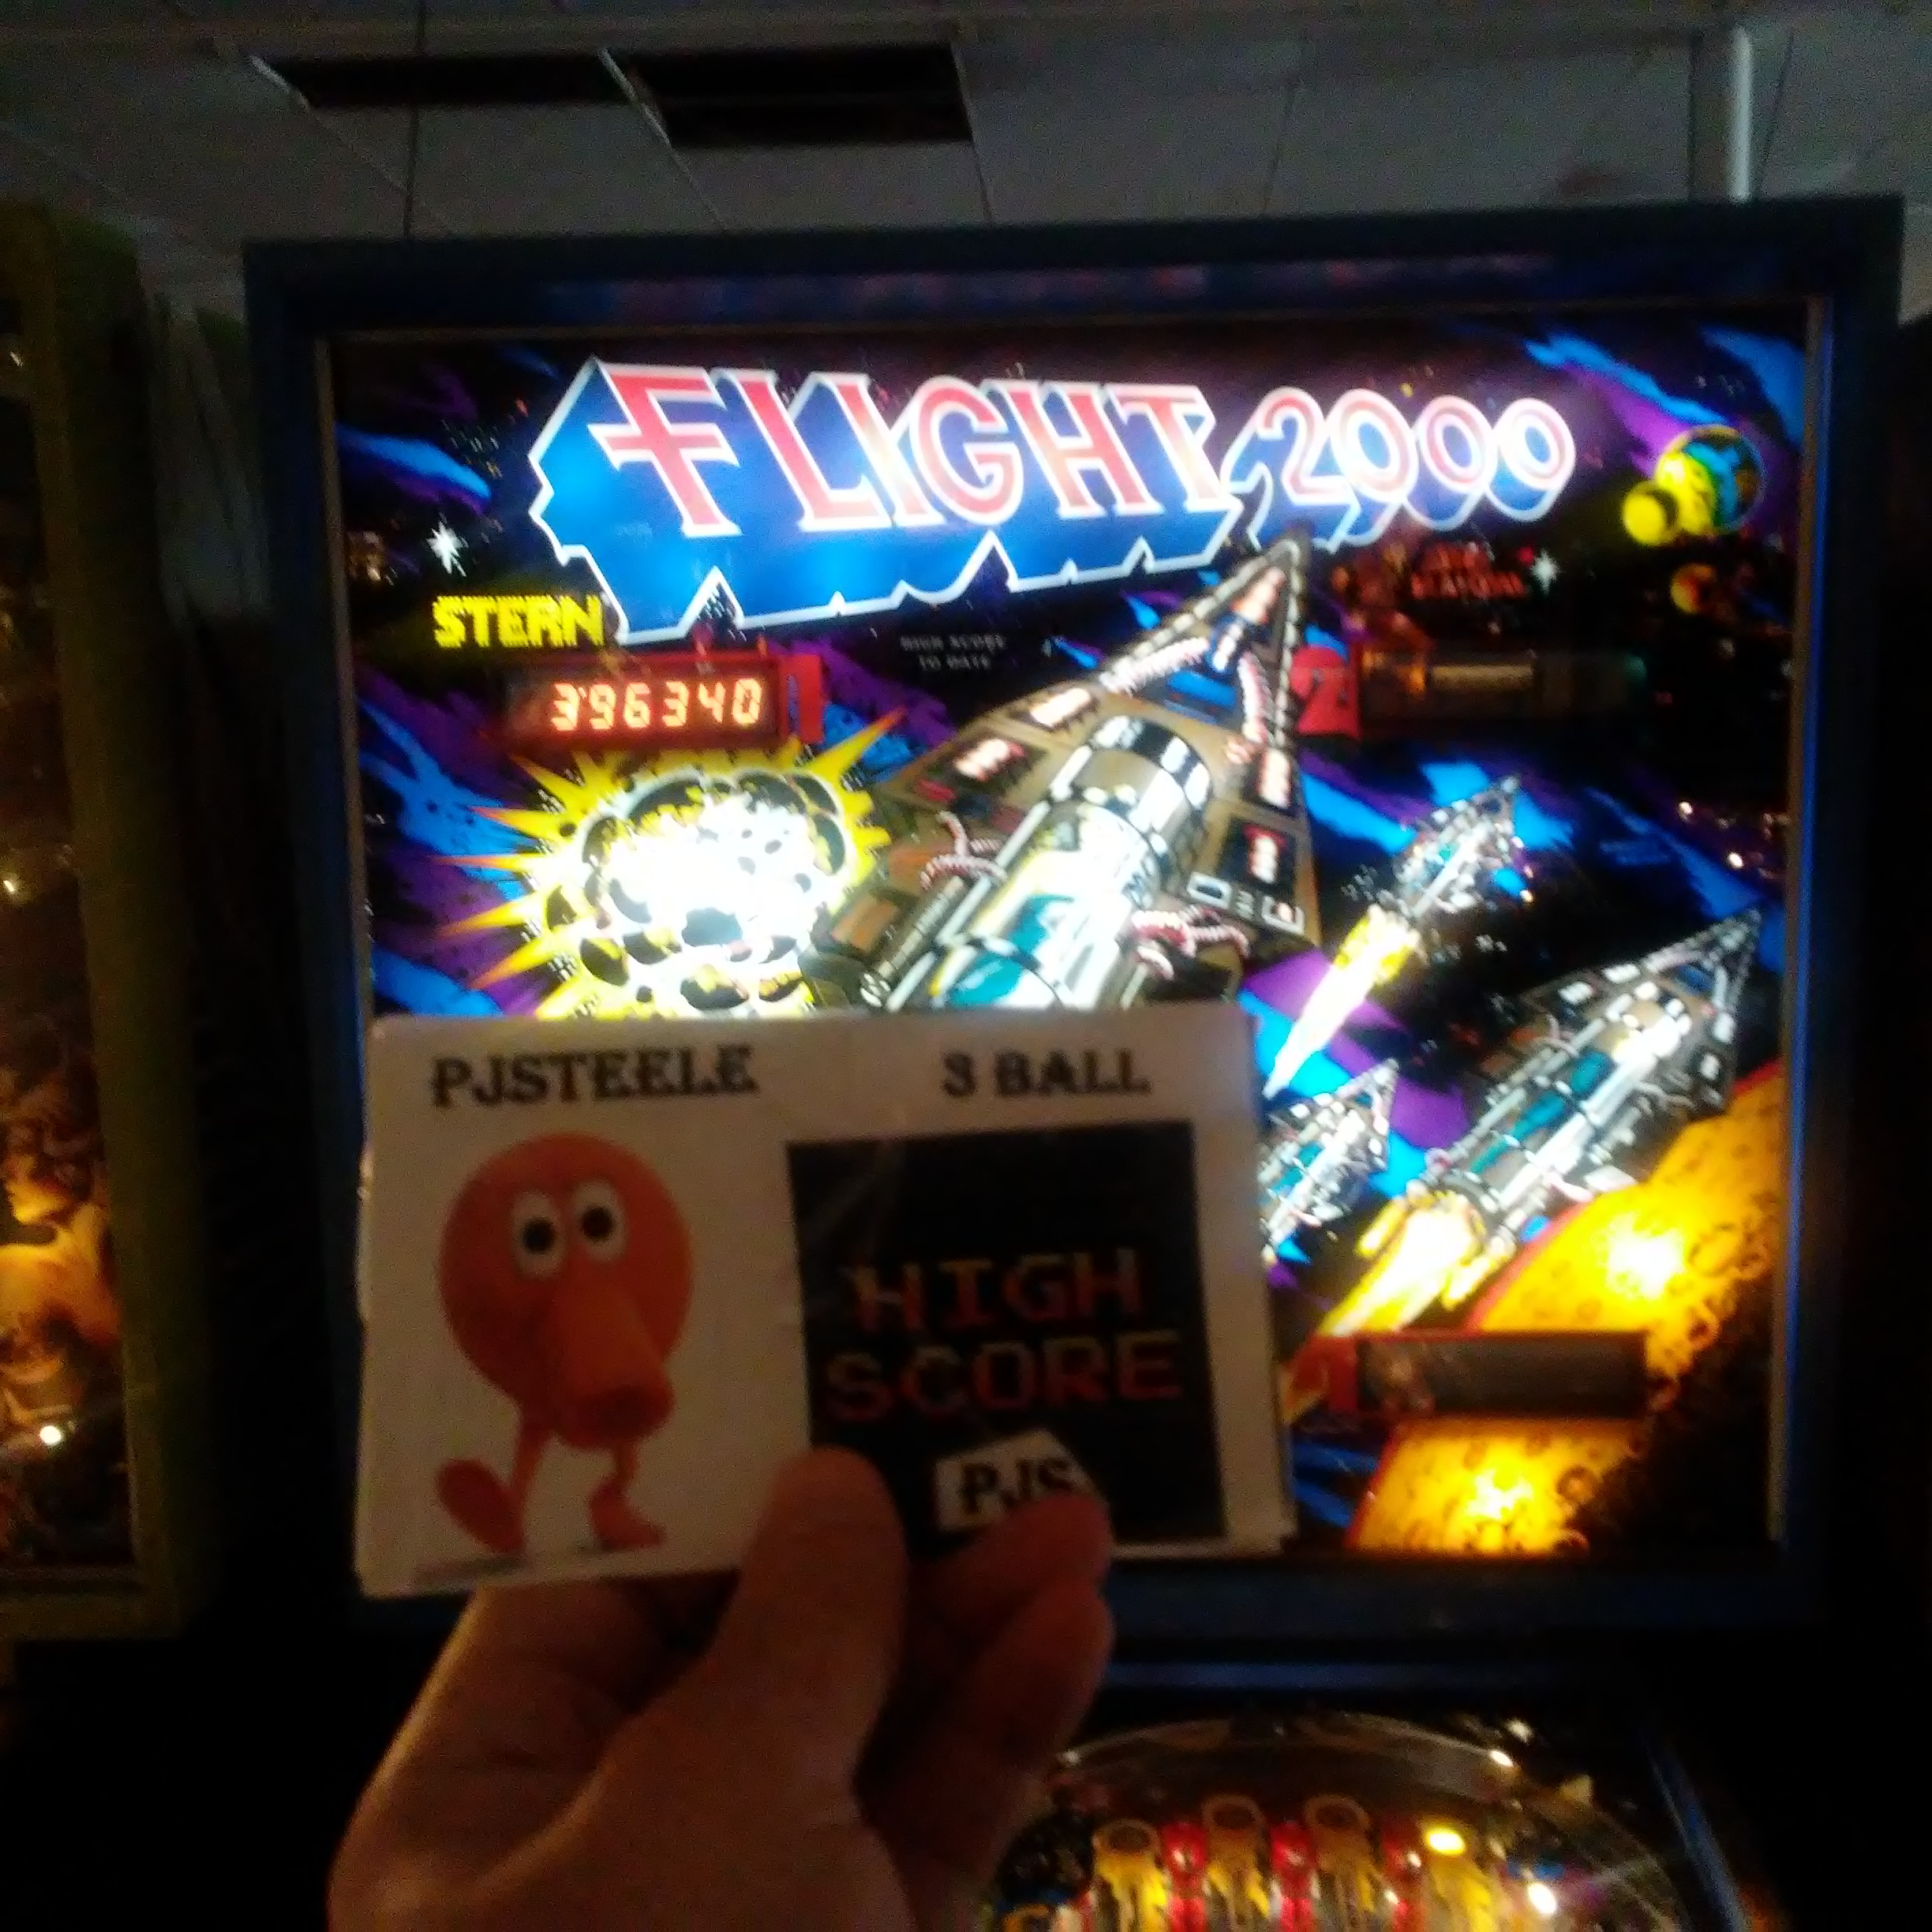 Pjsteele: Flight 2000 (Pinball: 3 Balls) 396,340 points on 2018-03-03 21:39:50